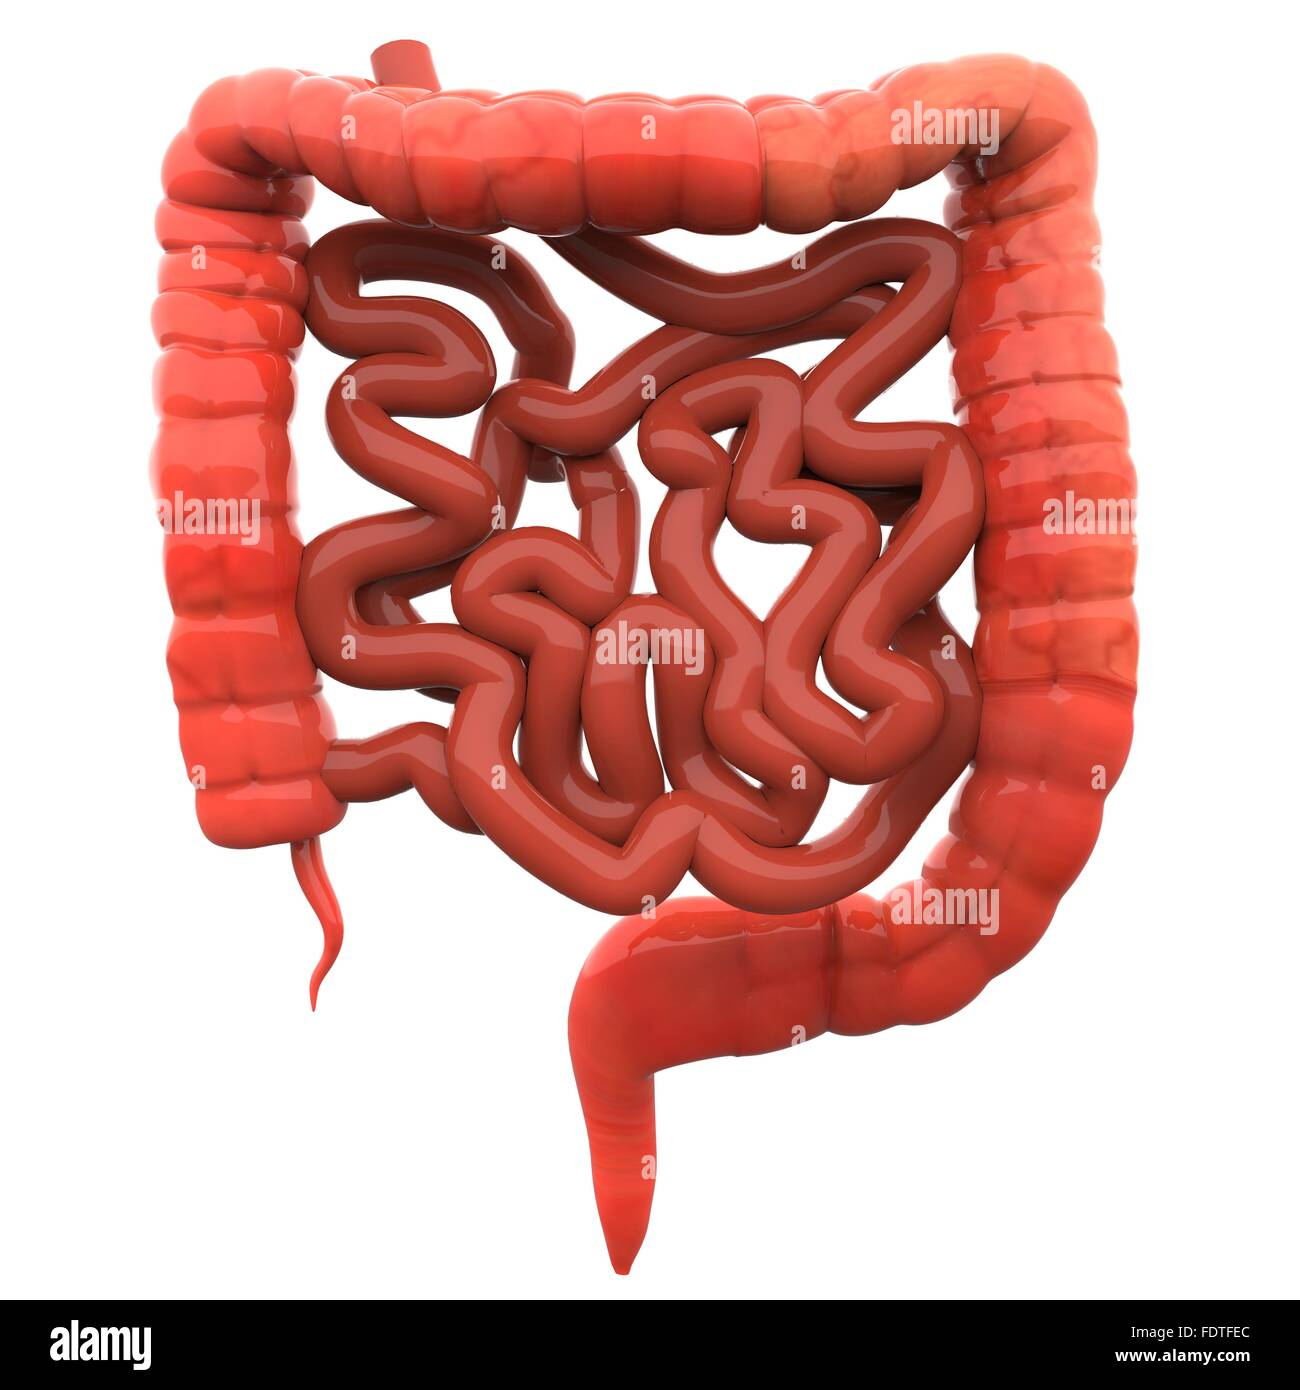 Small Intestine 3d Cut Out Stock Images & Pictures - Alamy